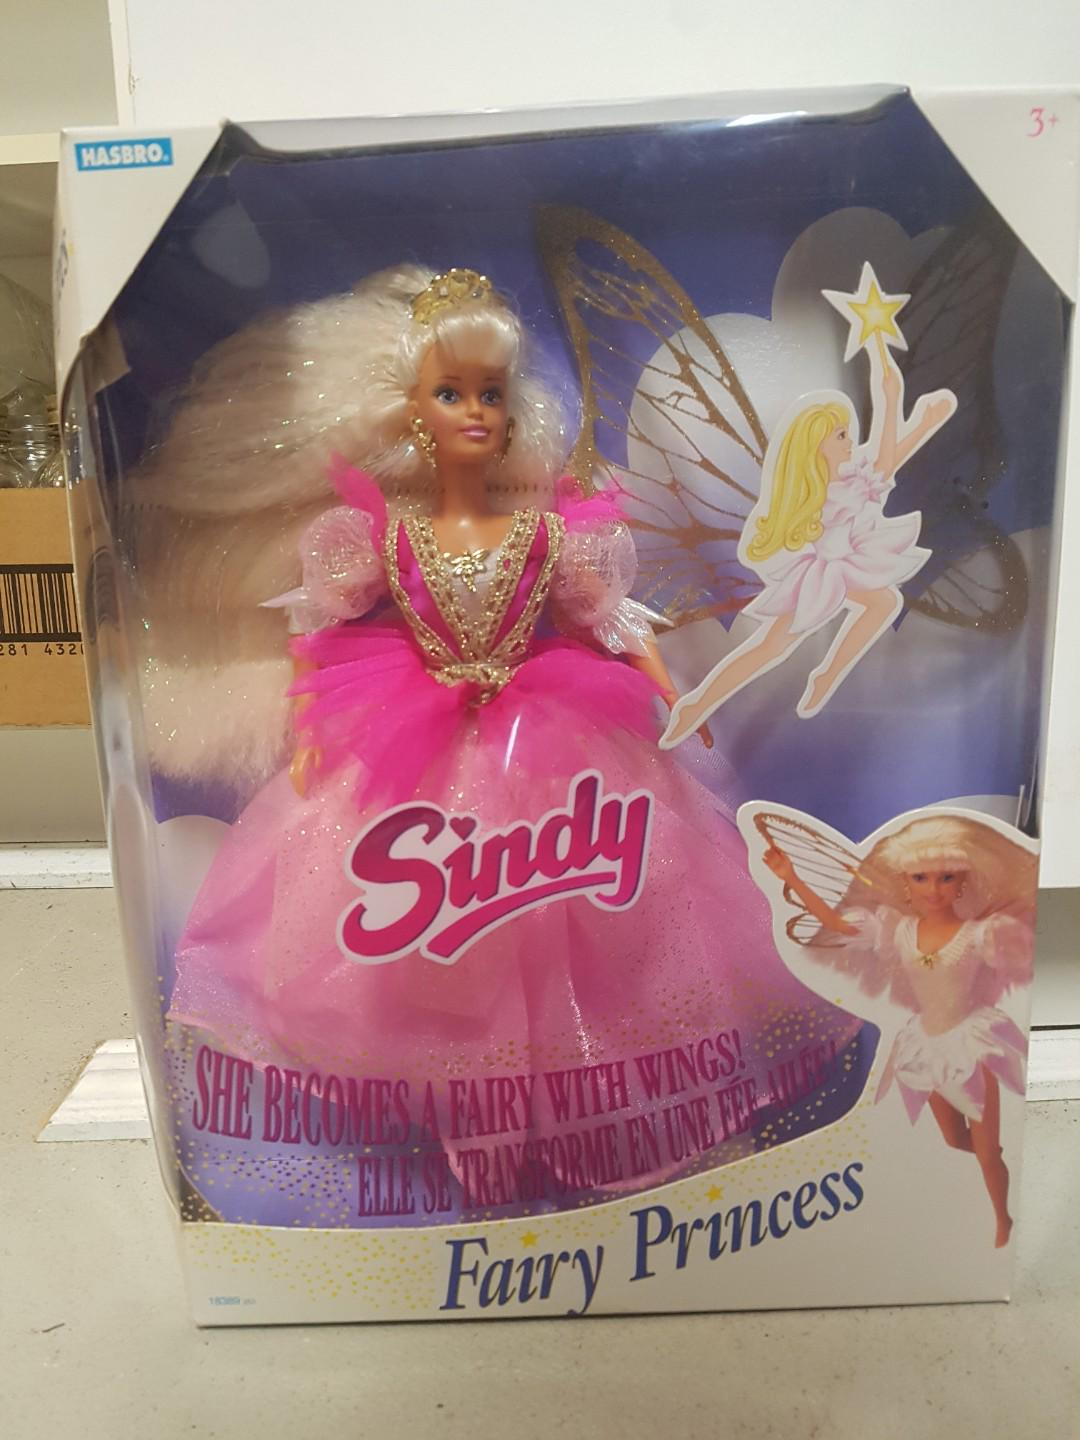 Rare collectable Sindy fairy princess doll. Never been opened